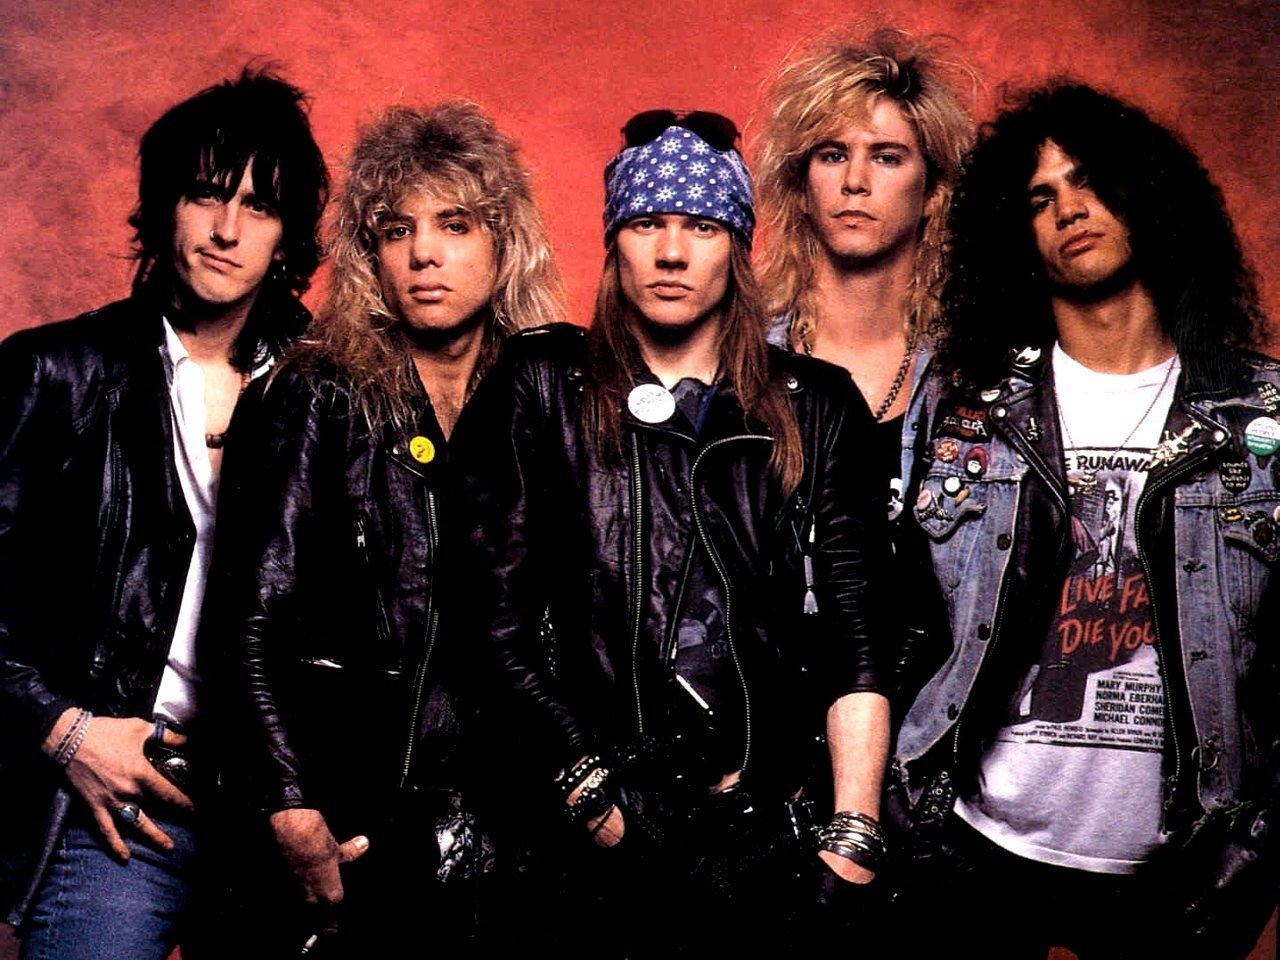 Guns and roses anuncian gira por mexico